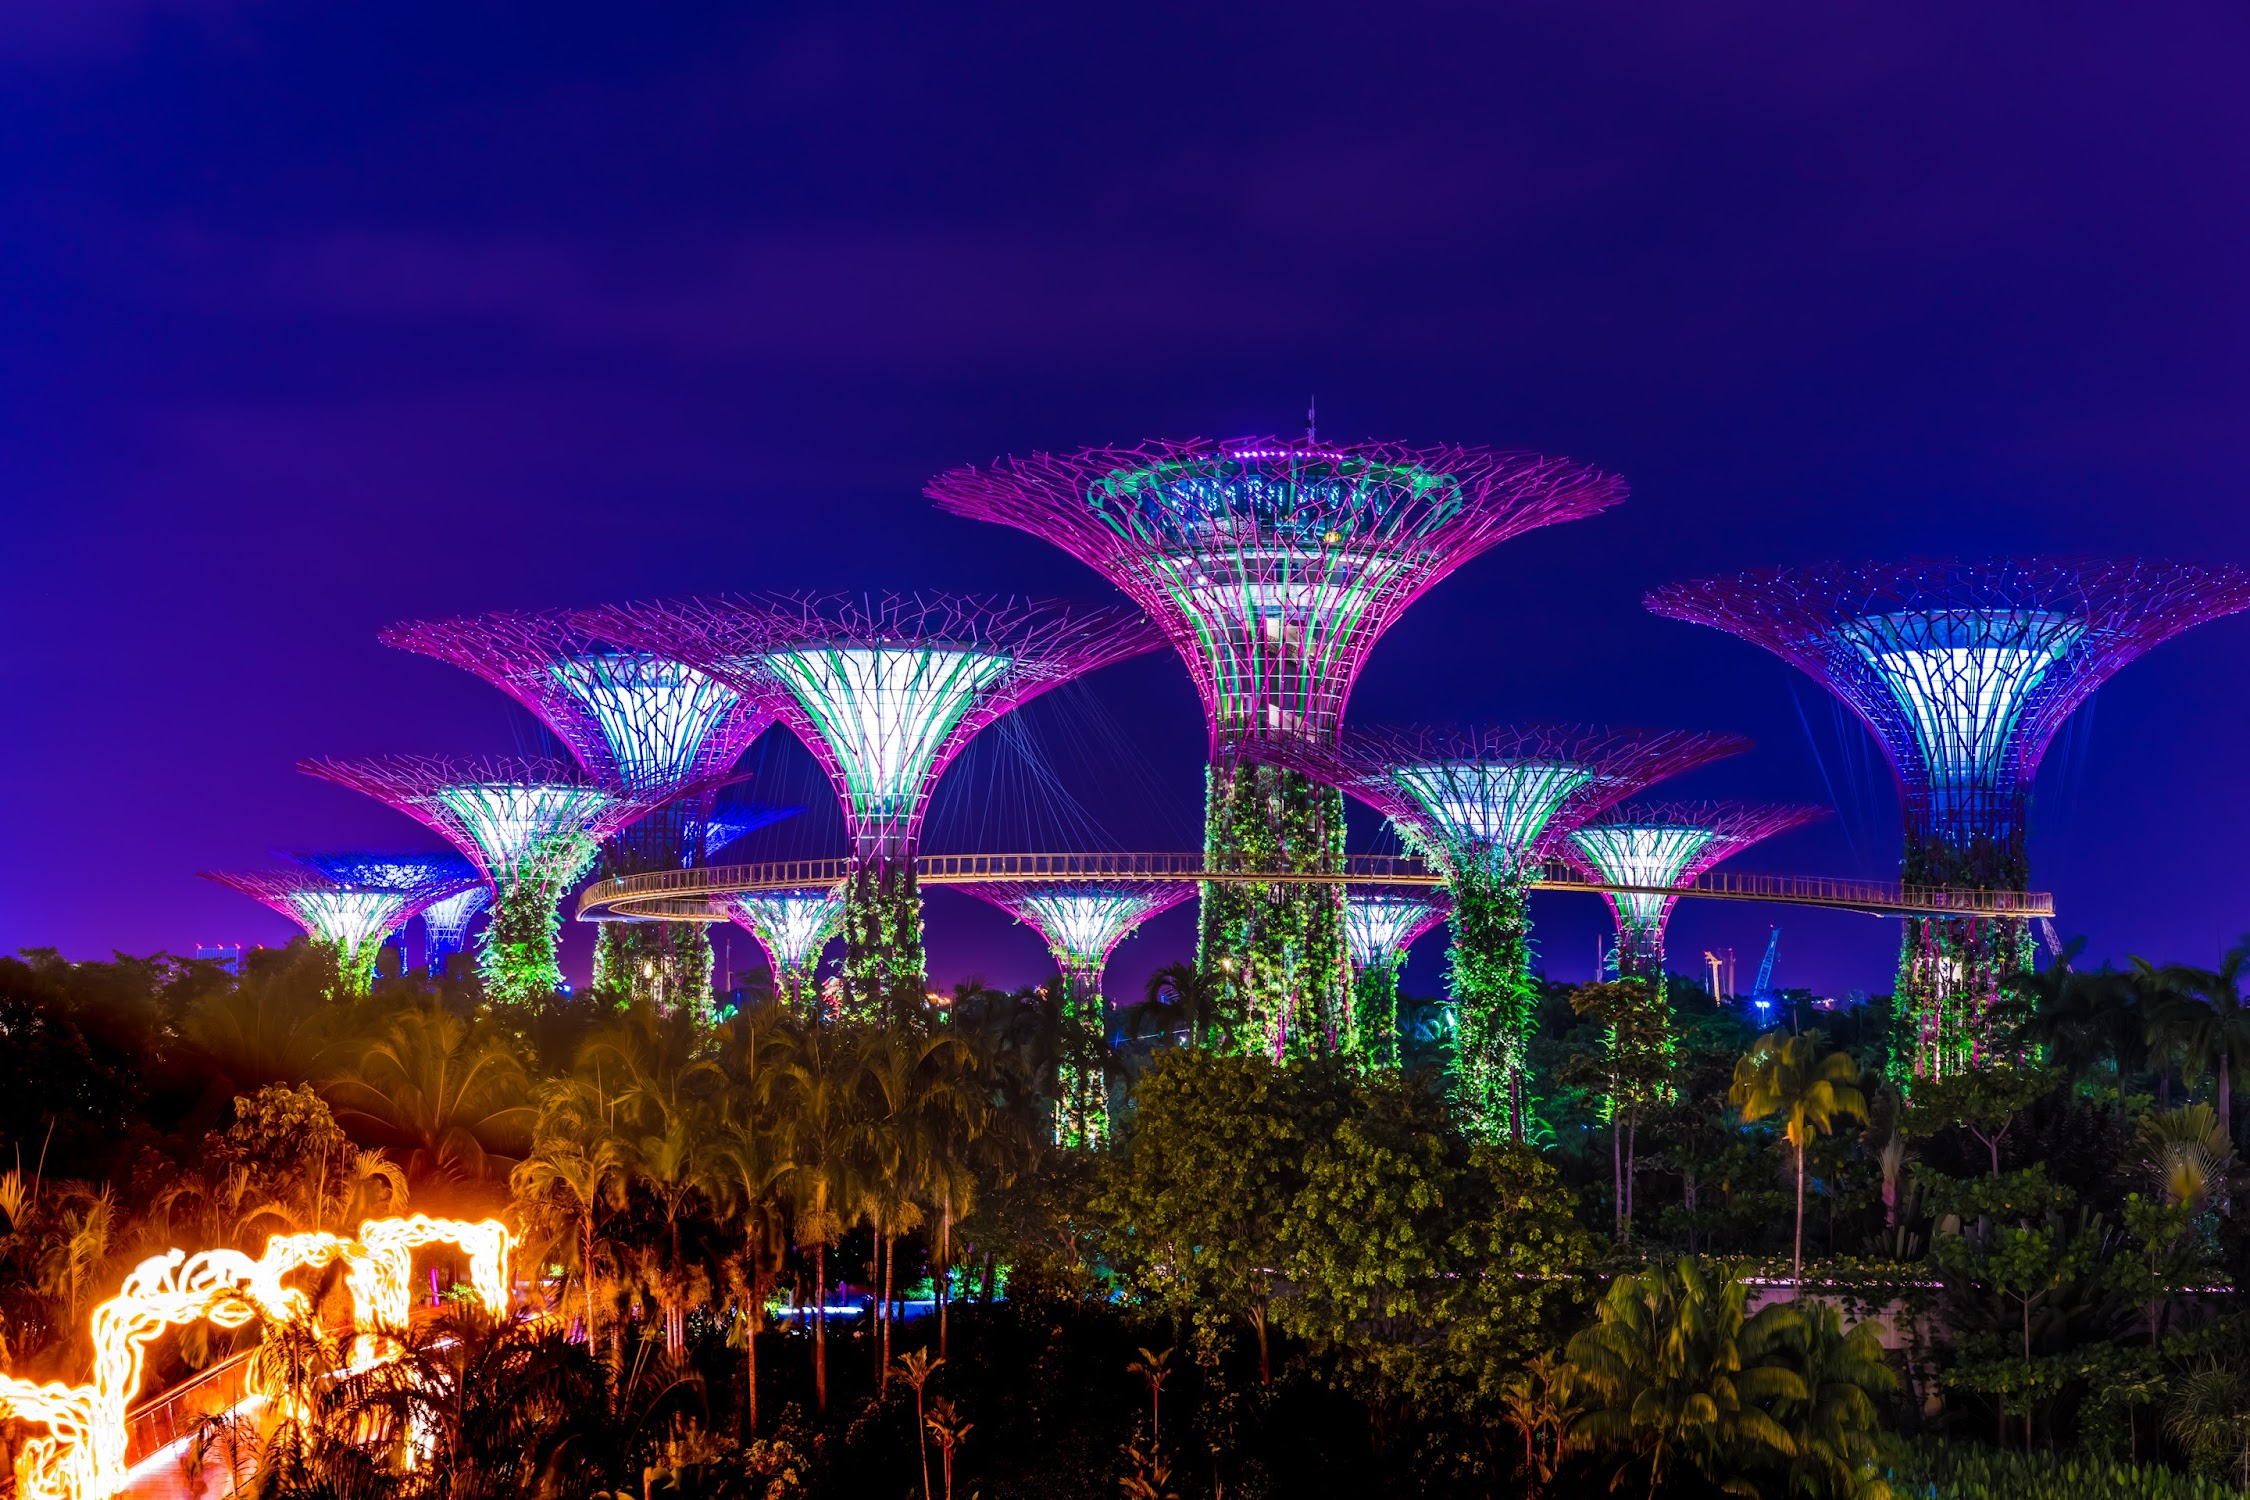 Gardens by the Bay night view4